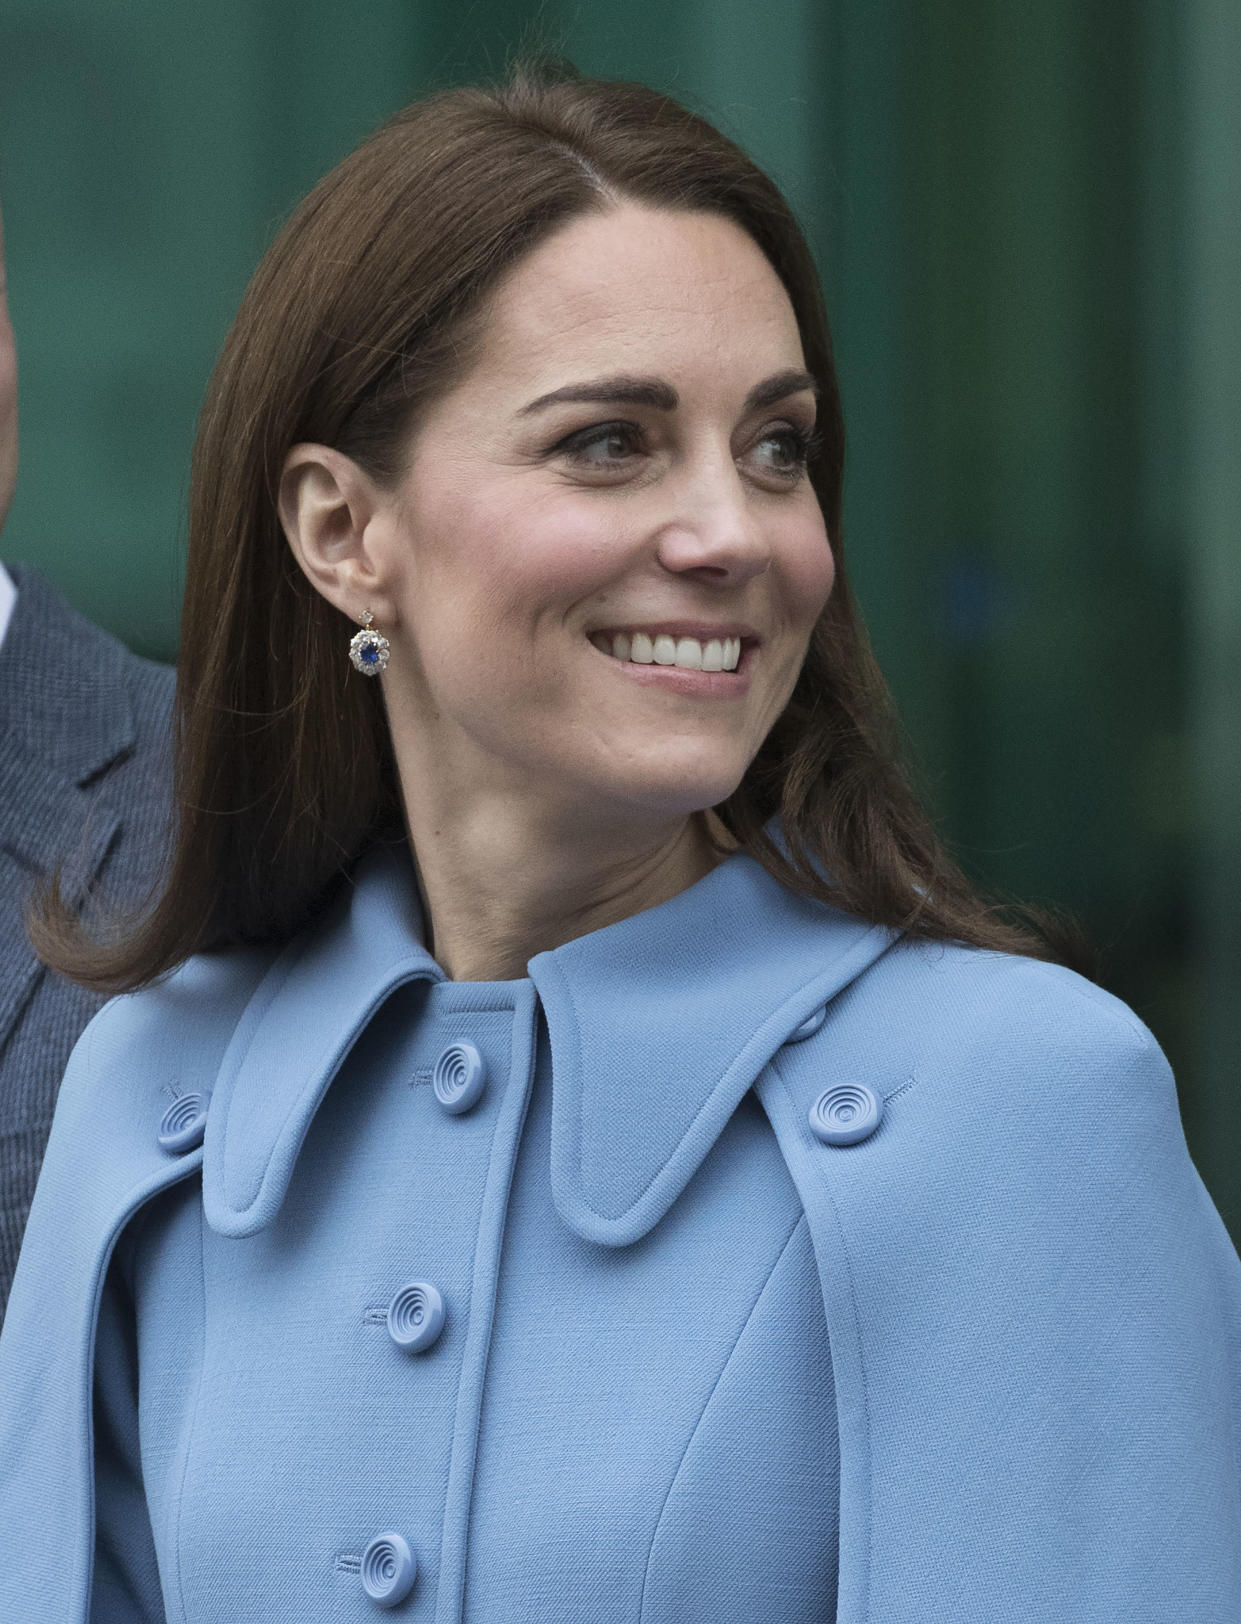 Kate Middleton received her first dose of the COVID-19 vaccine. (Photo: Stephen Lock - Pool/Getty Images)